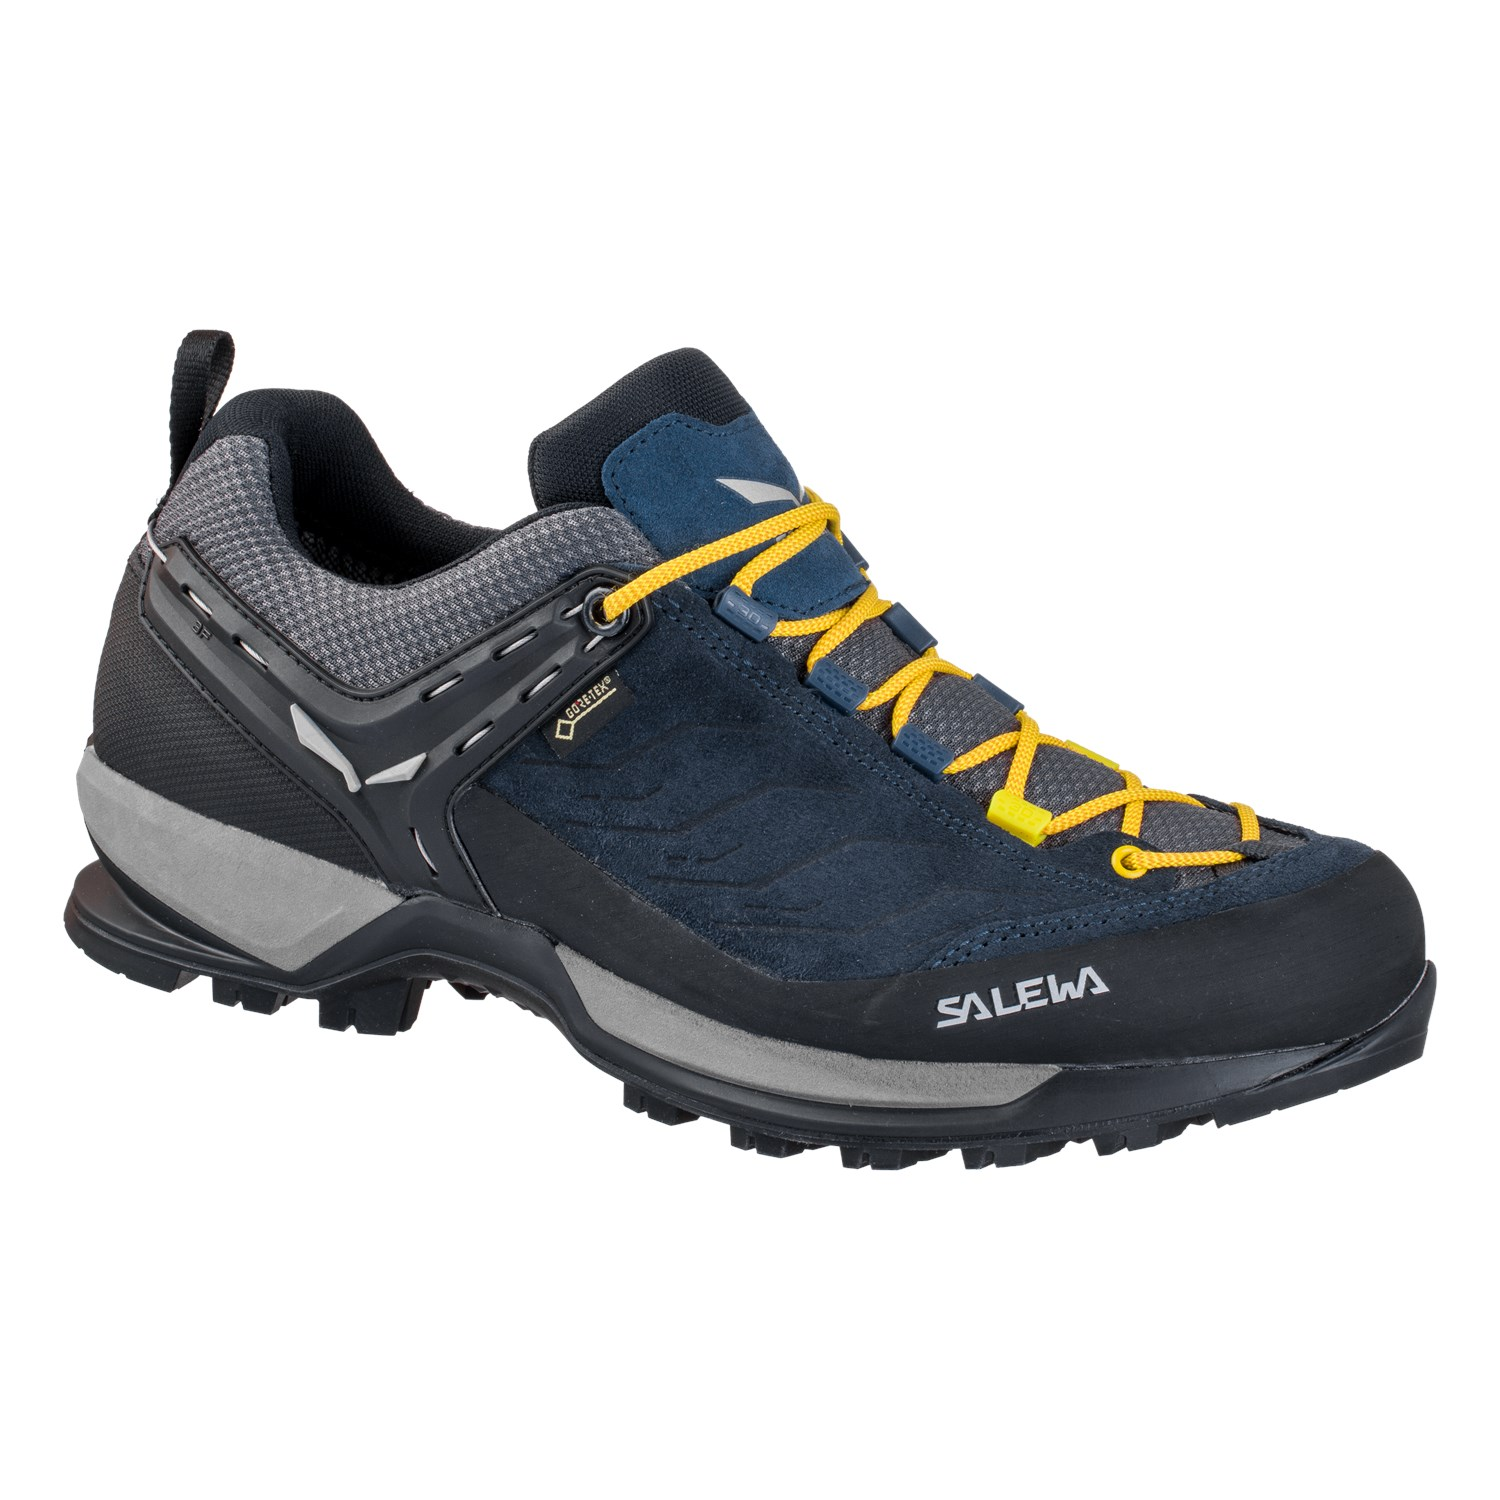 Salewa MTN Trainer GTX Herren Schuhe Fb. night black/kamille